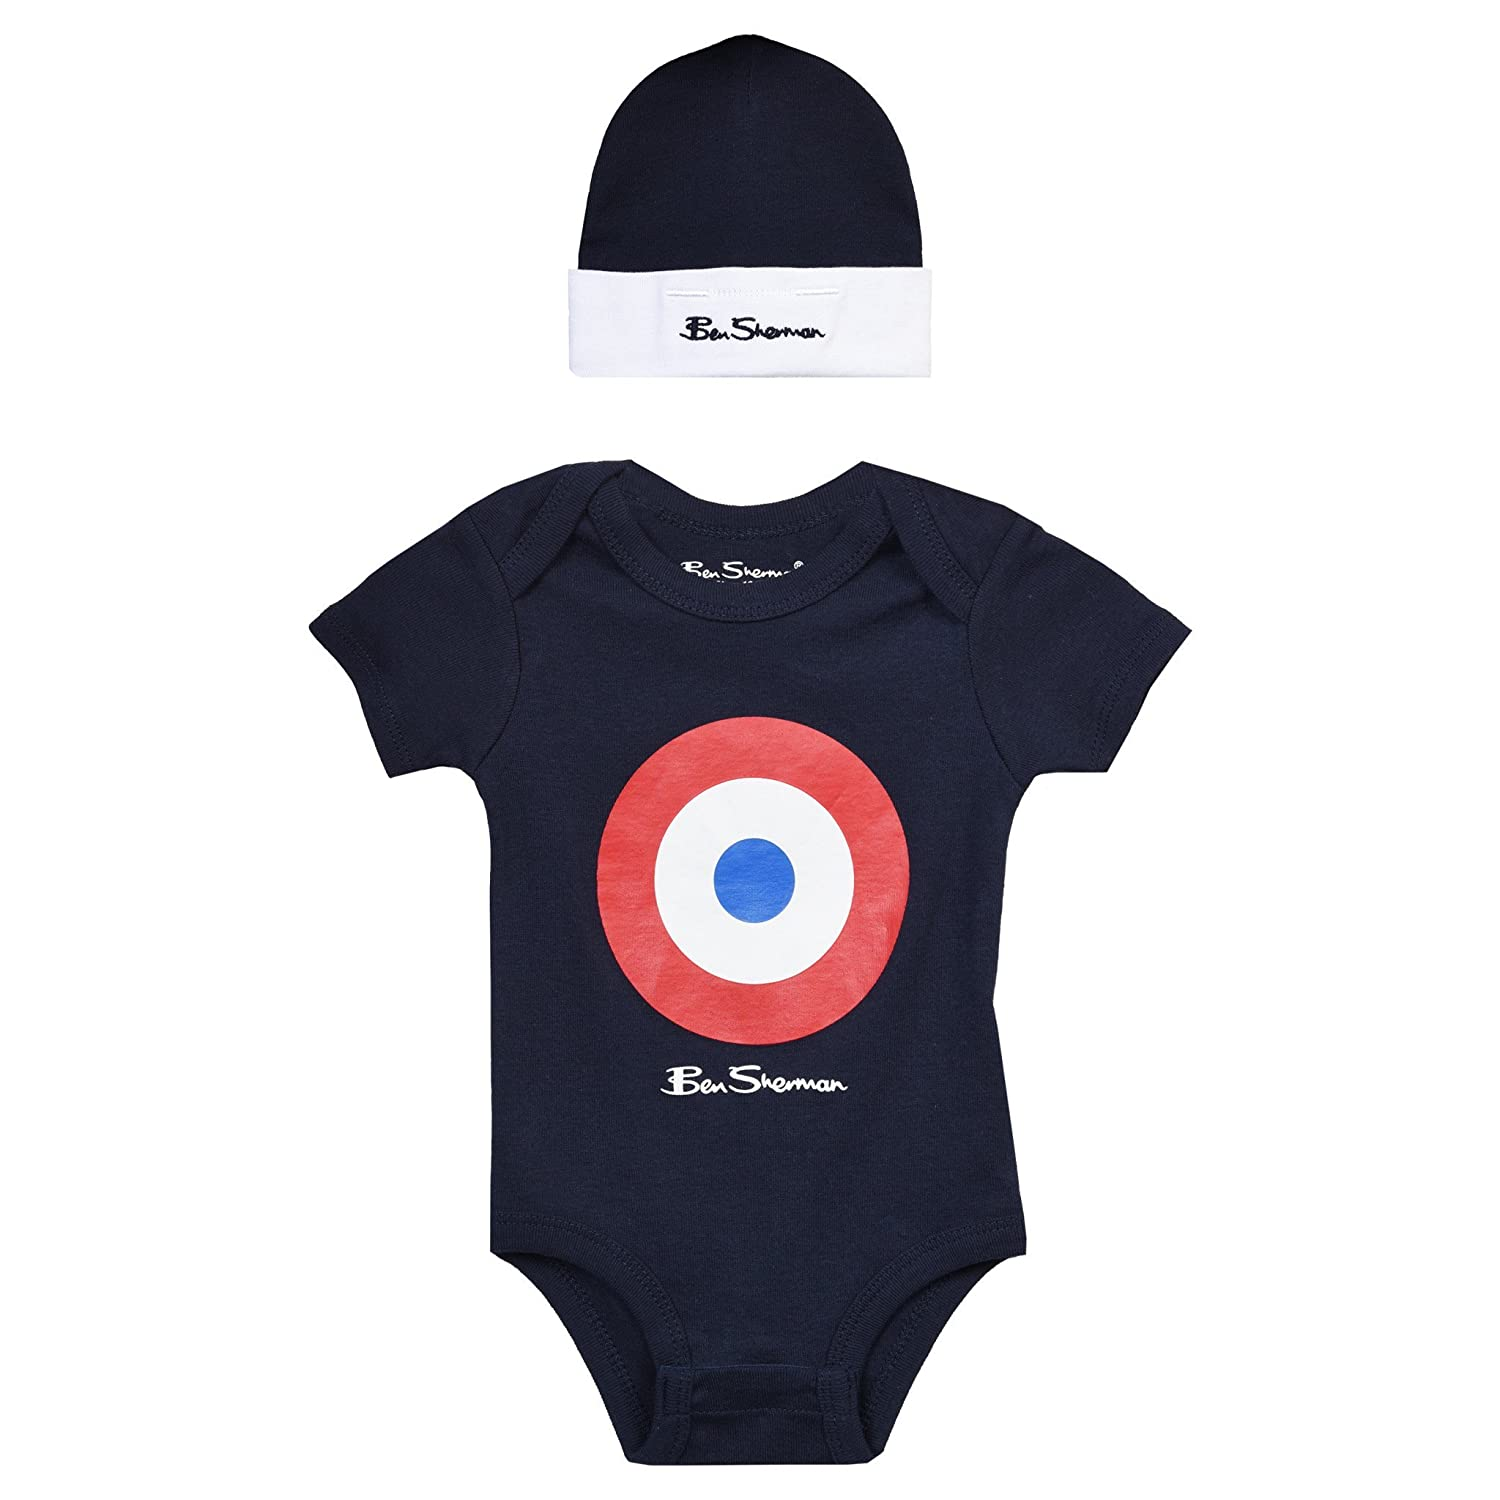 Ben Sherman Baby Hat and Vest Set (0-3M, Navy) … Navy) ...